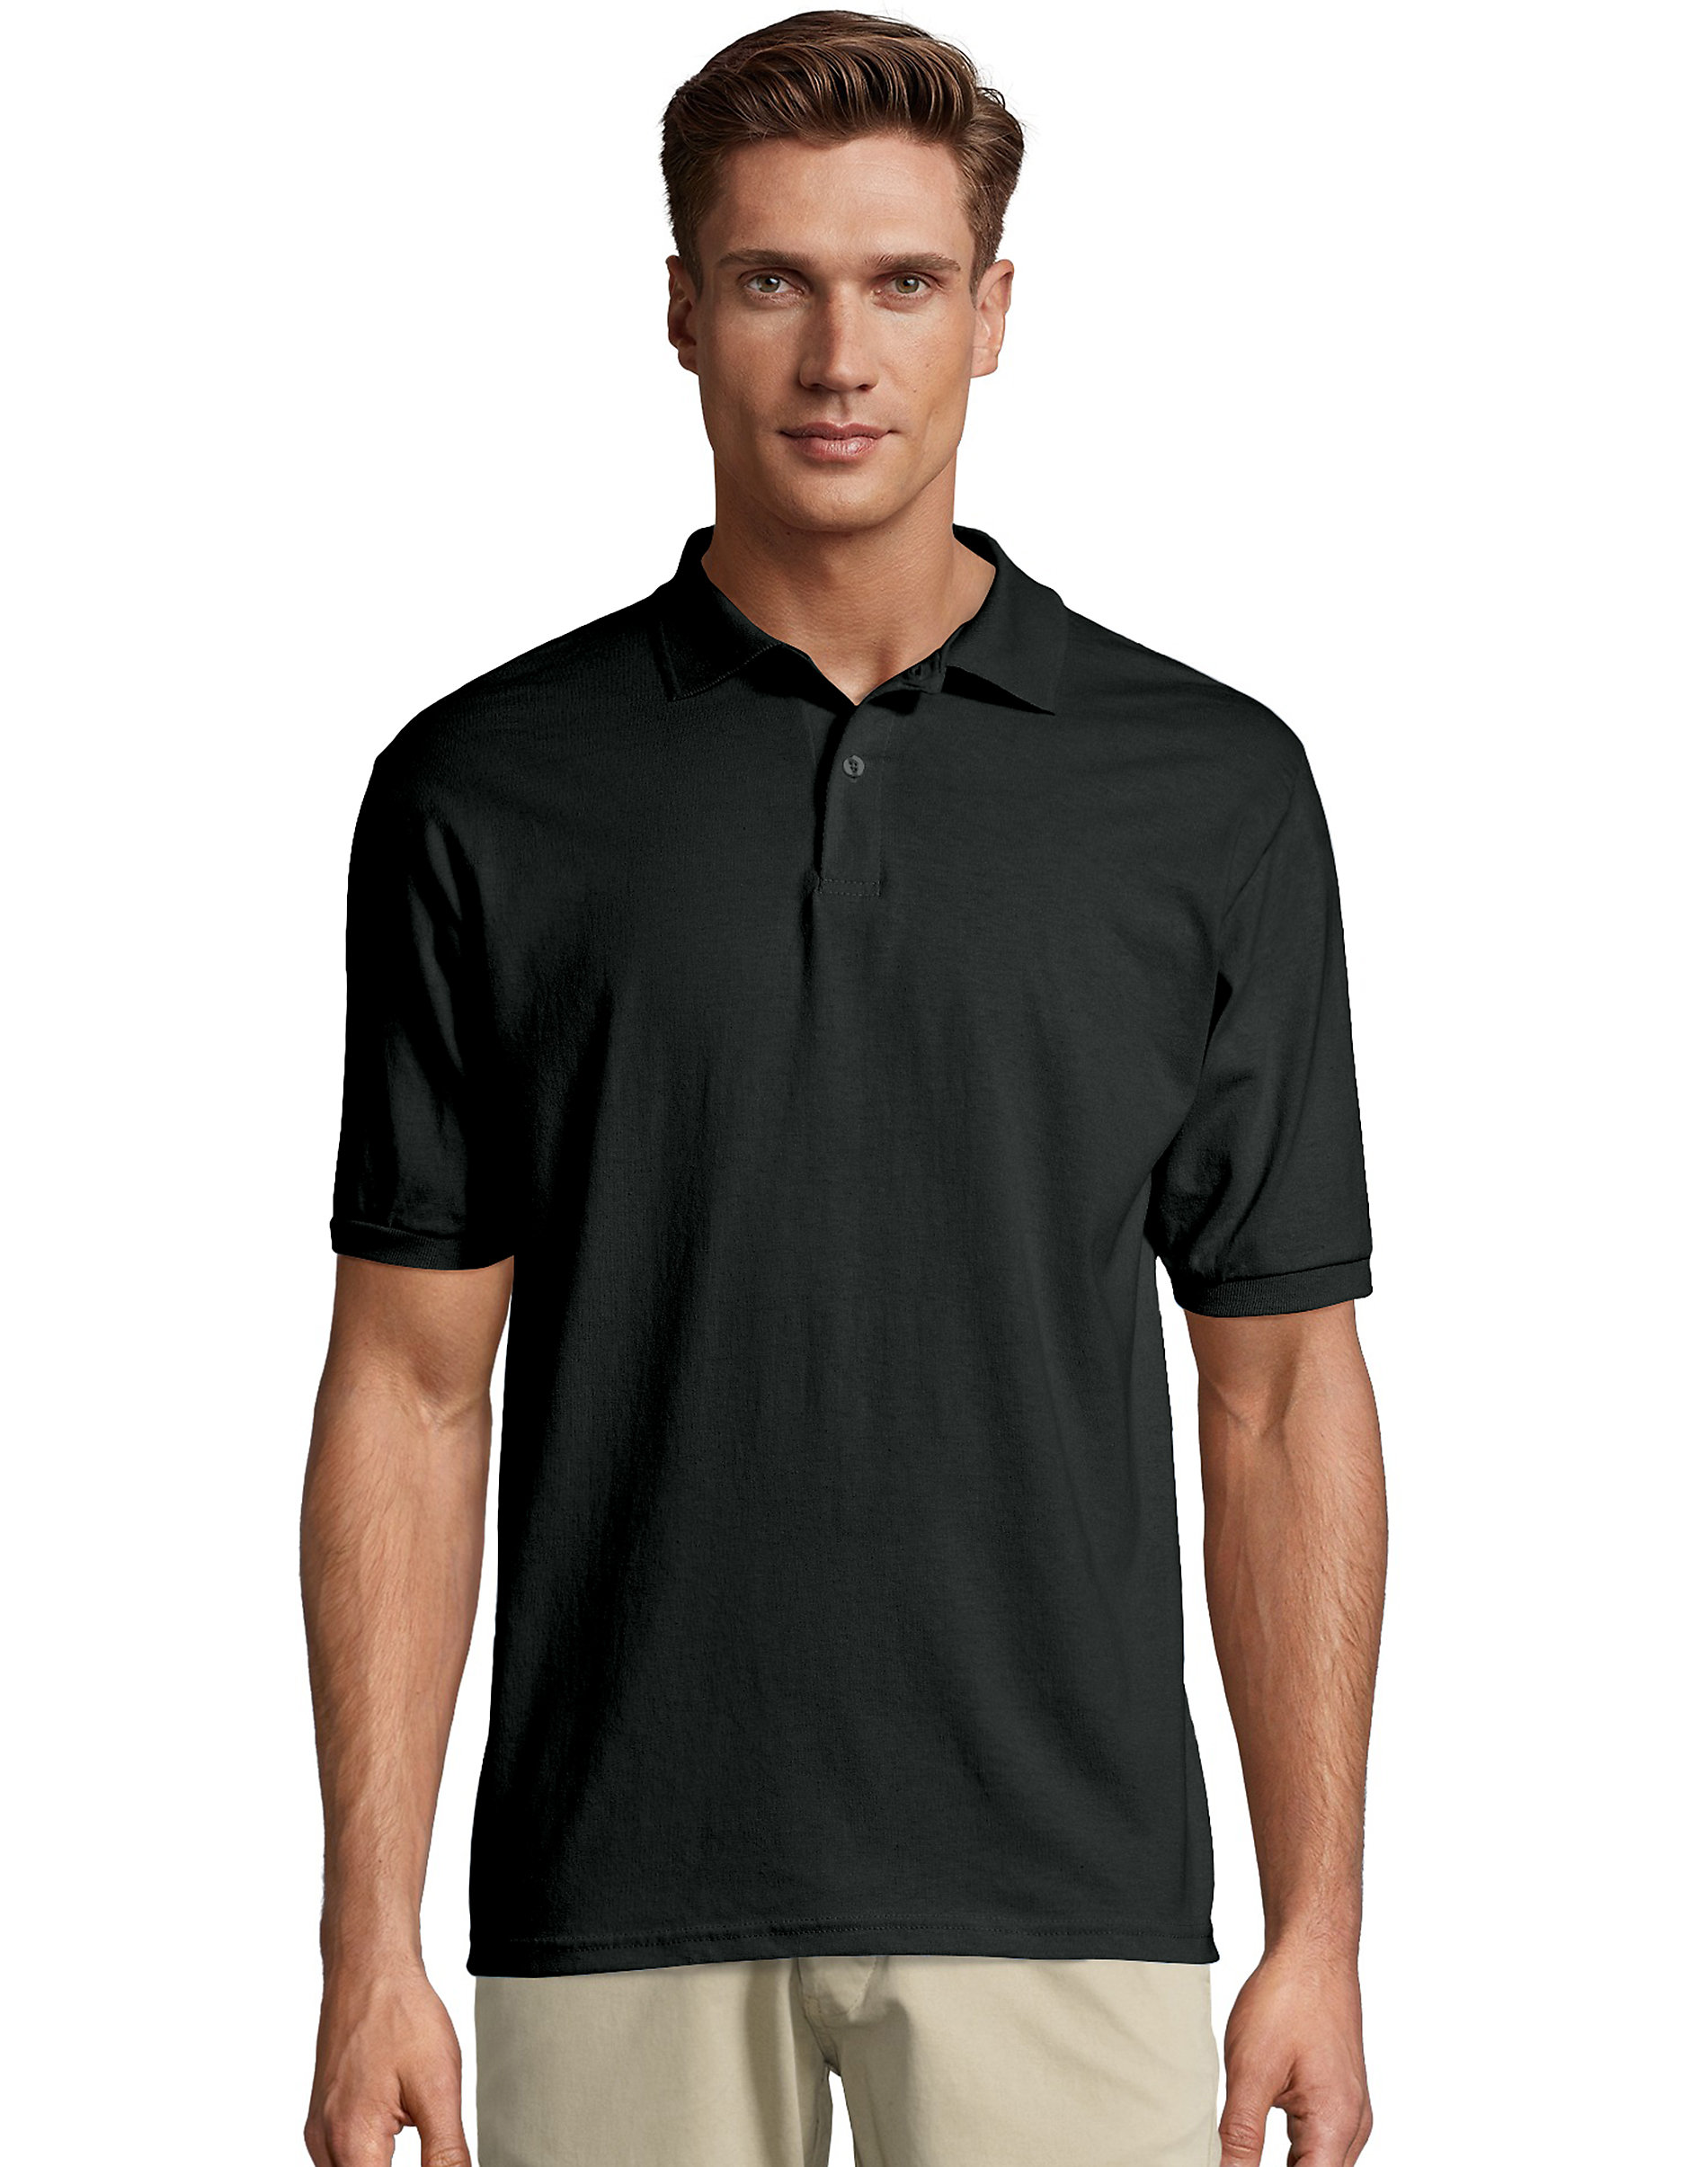 Hanes Golf Tee Men's Polo Shirt